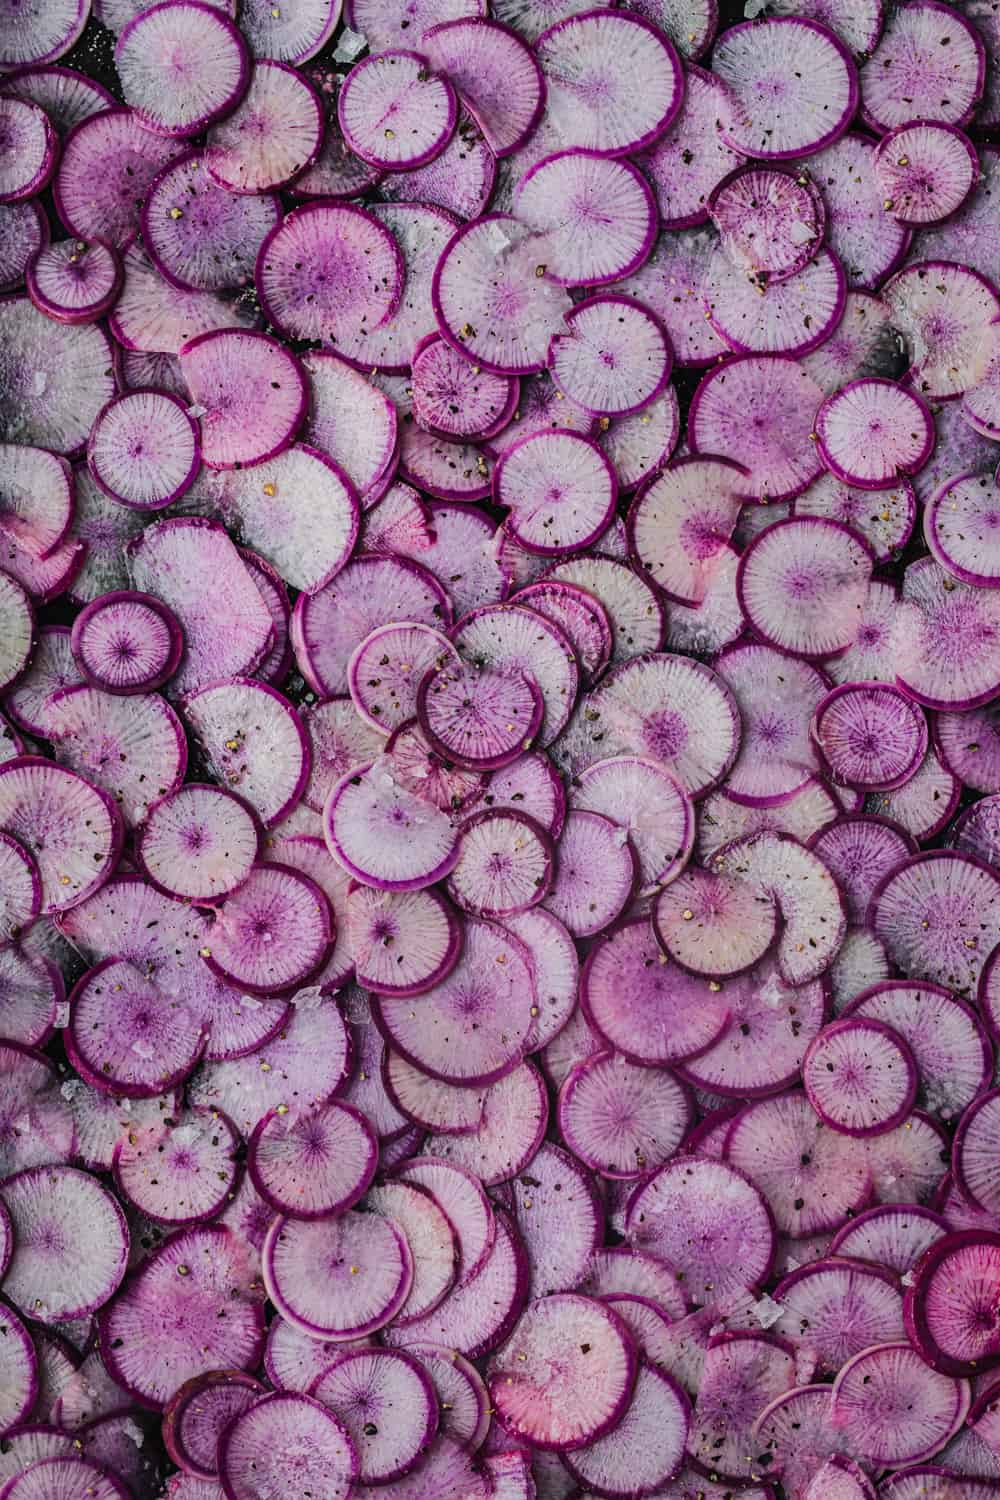 thinly sliced purple ninja radishes, overhead shot